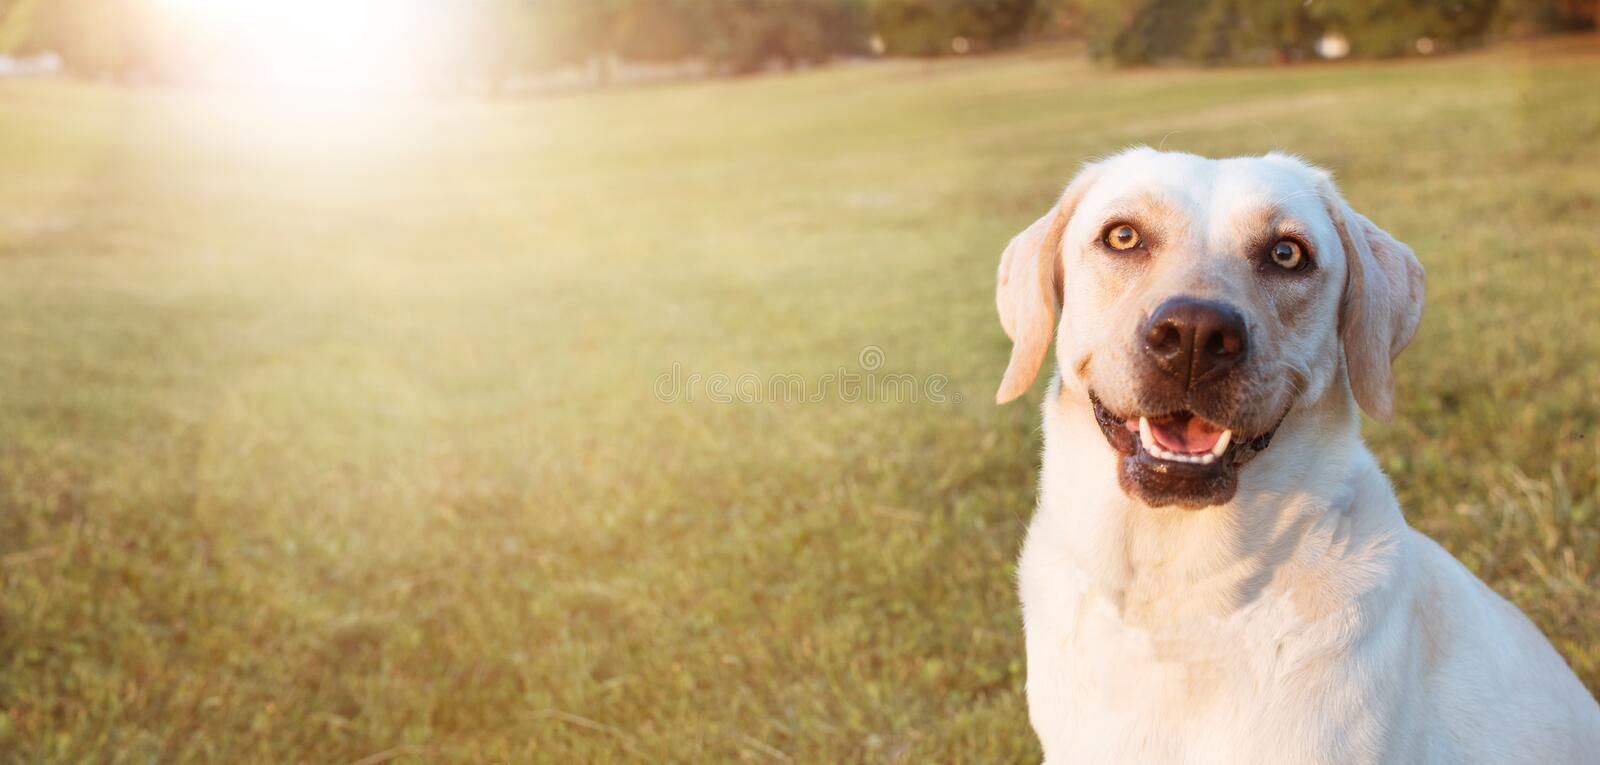 BANNER HAPPY LABRADOR DOGS  RETRIEVER SITTING IN THE GRASS ON SUMMER SUNSET LIGHT stock photos